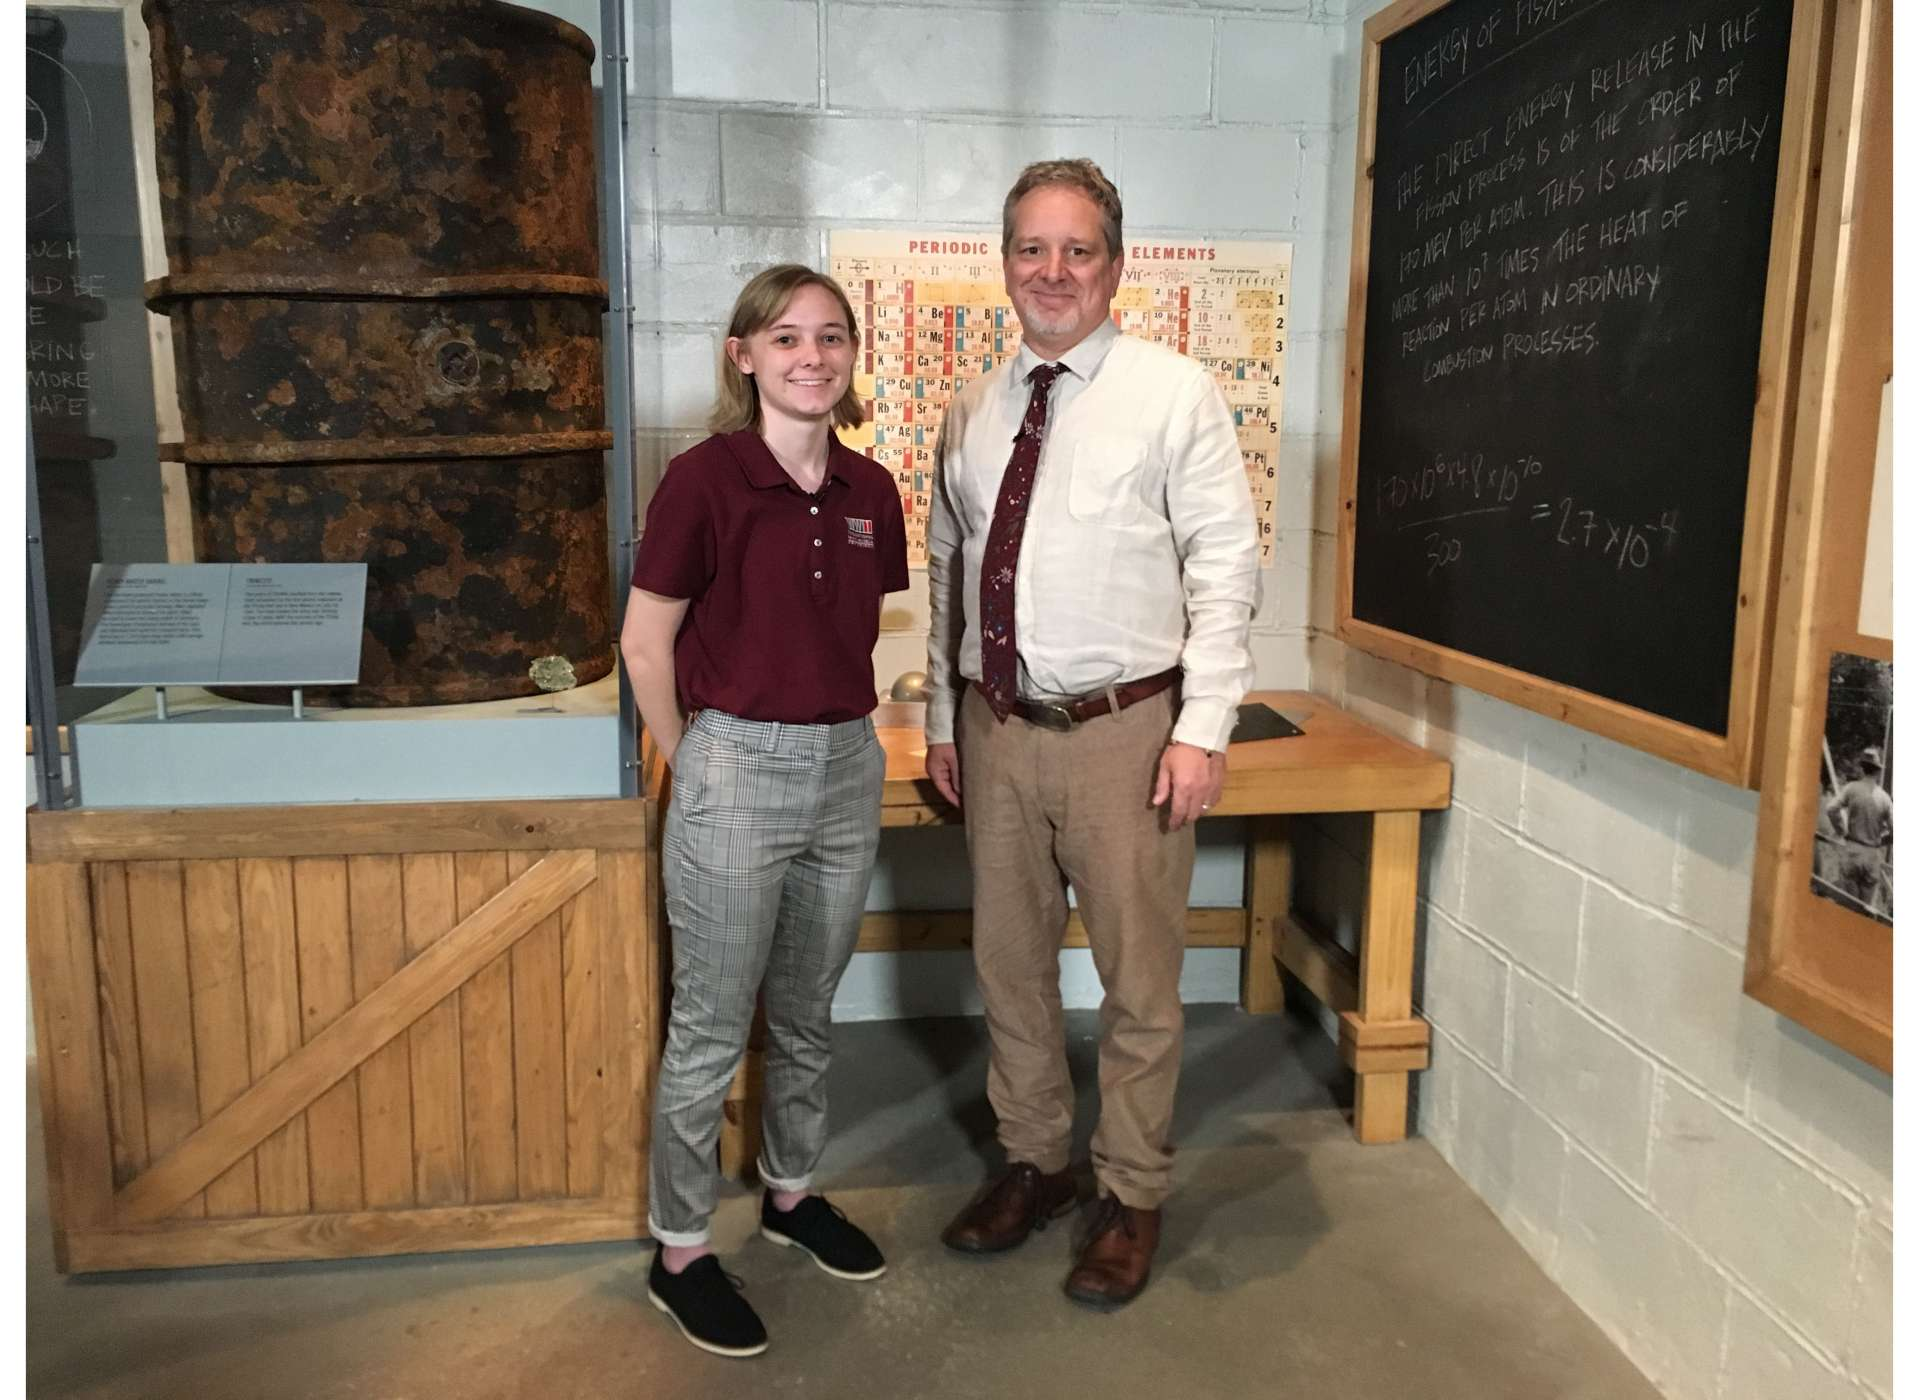 STEM specialist Rob Wallace reviews the early history of nuclear science with student reporter Julia.